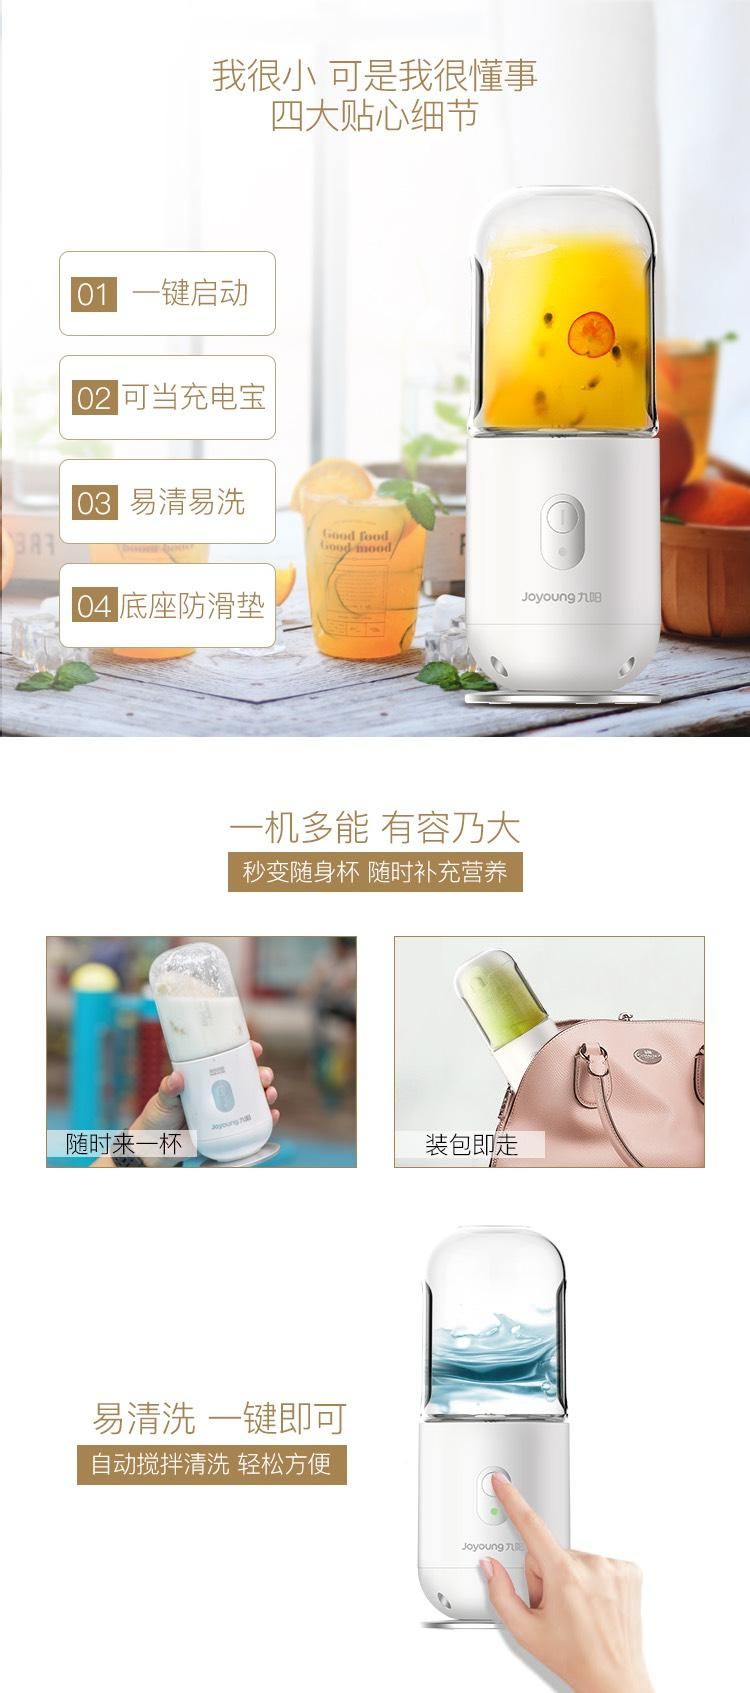 Joyoung/九阳 JYL-C902D Portable/ Wireless Juicer/ Chargable Battery/ 1 Year SG Warranty